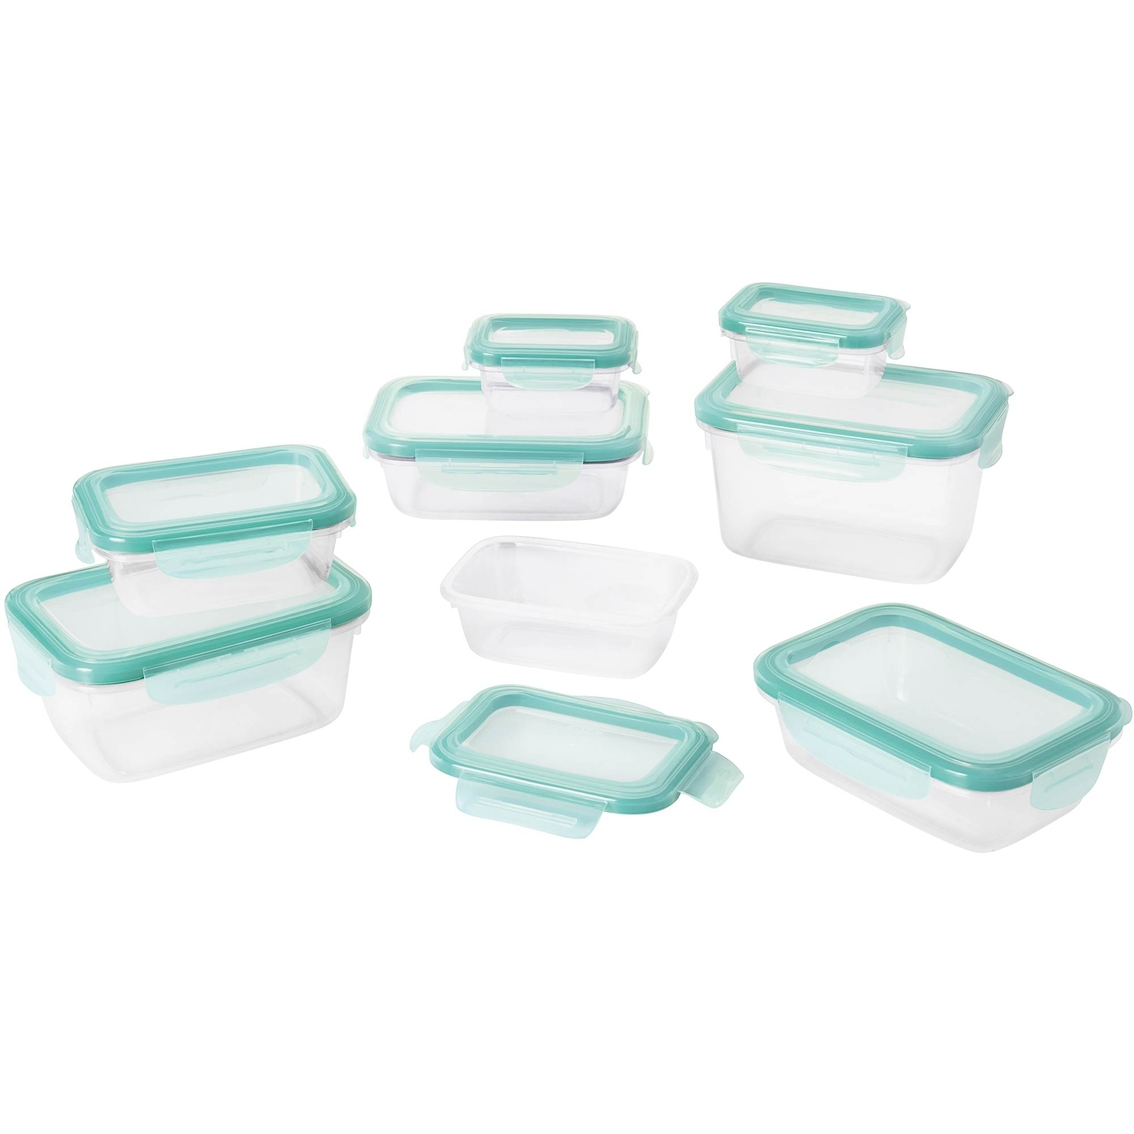 Oxo Good Grips Snap 16 Pc Plastic Food Storage Container Set Food Storage Household Shop The Exchange